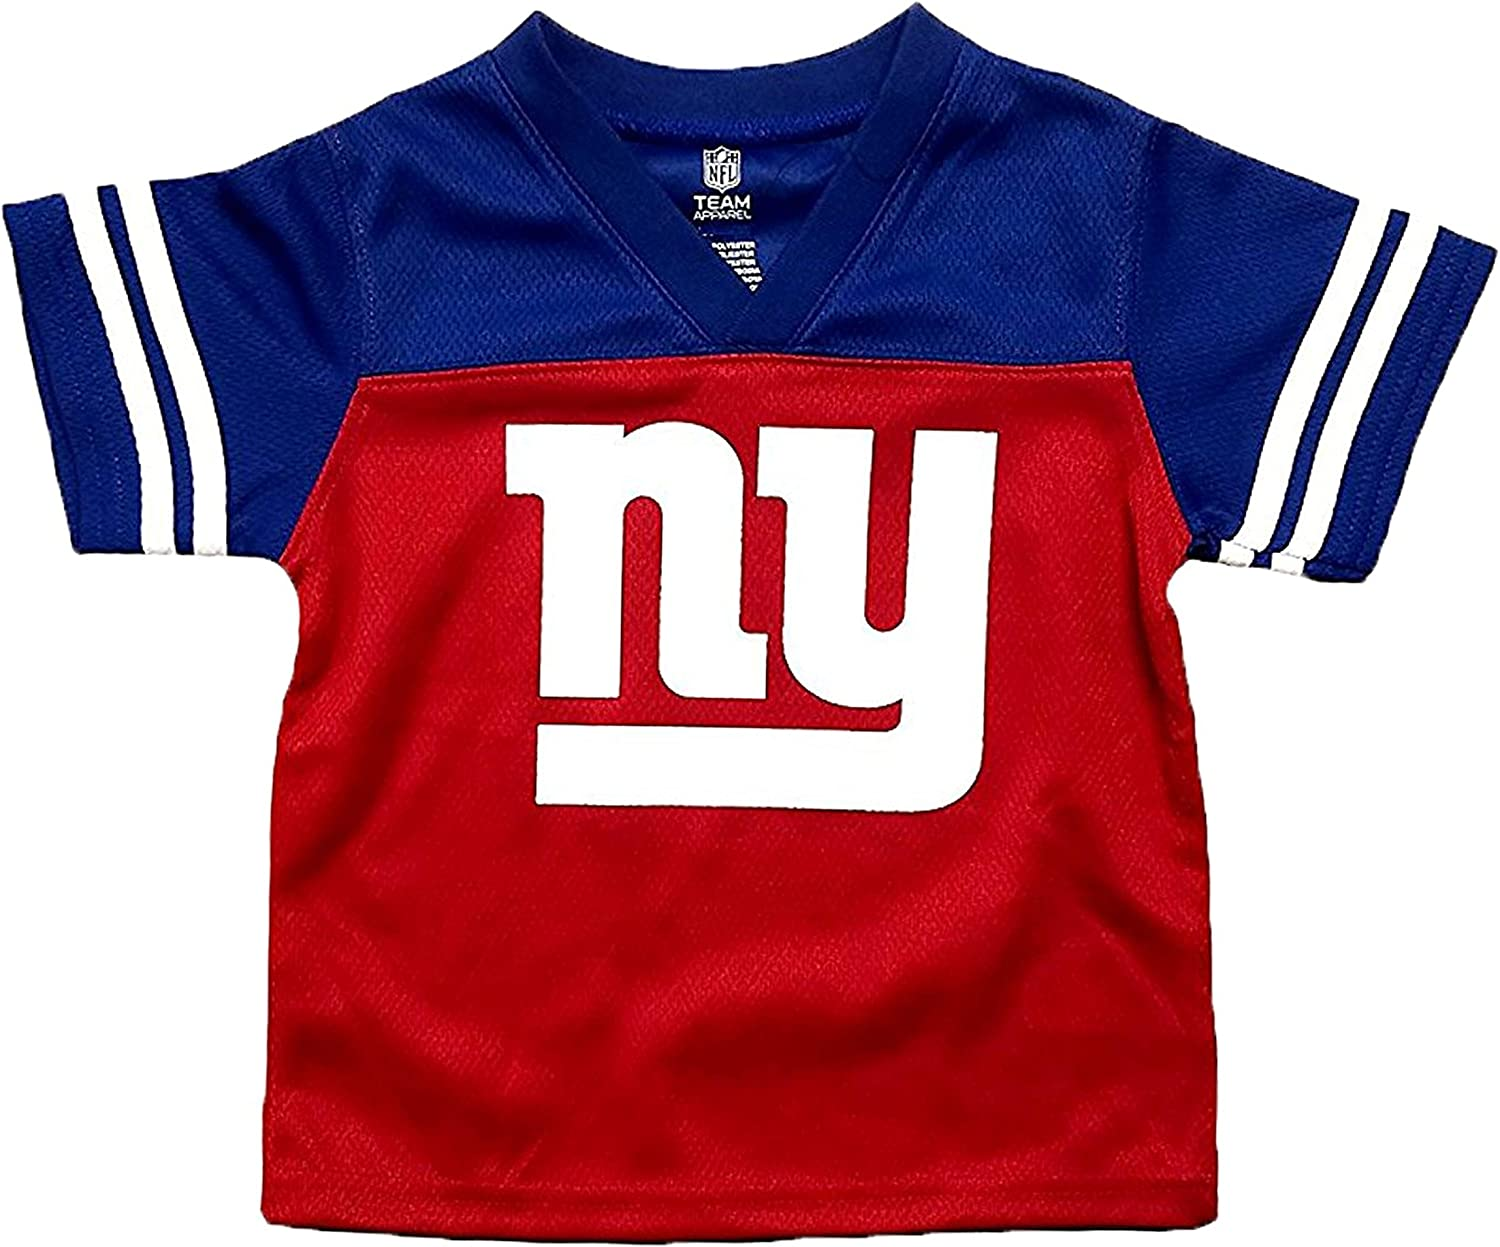 Outerstuff NFL Youth Girls Team V-Neck Tee New York Giants